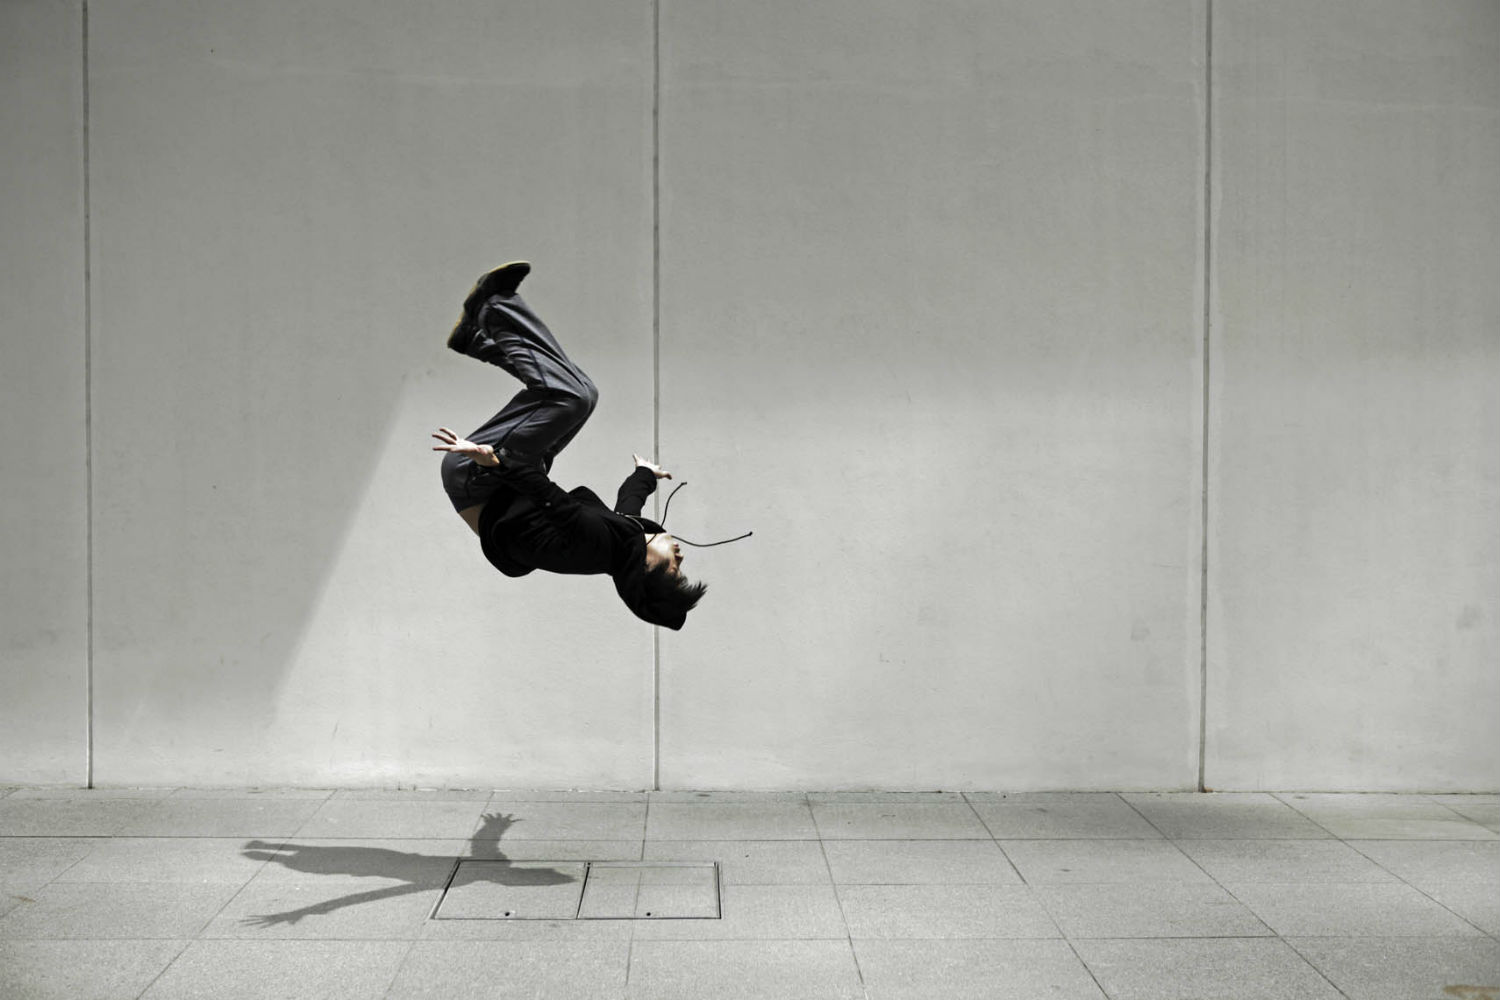 minimalist photography peter lay street dancing mid air